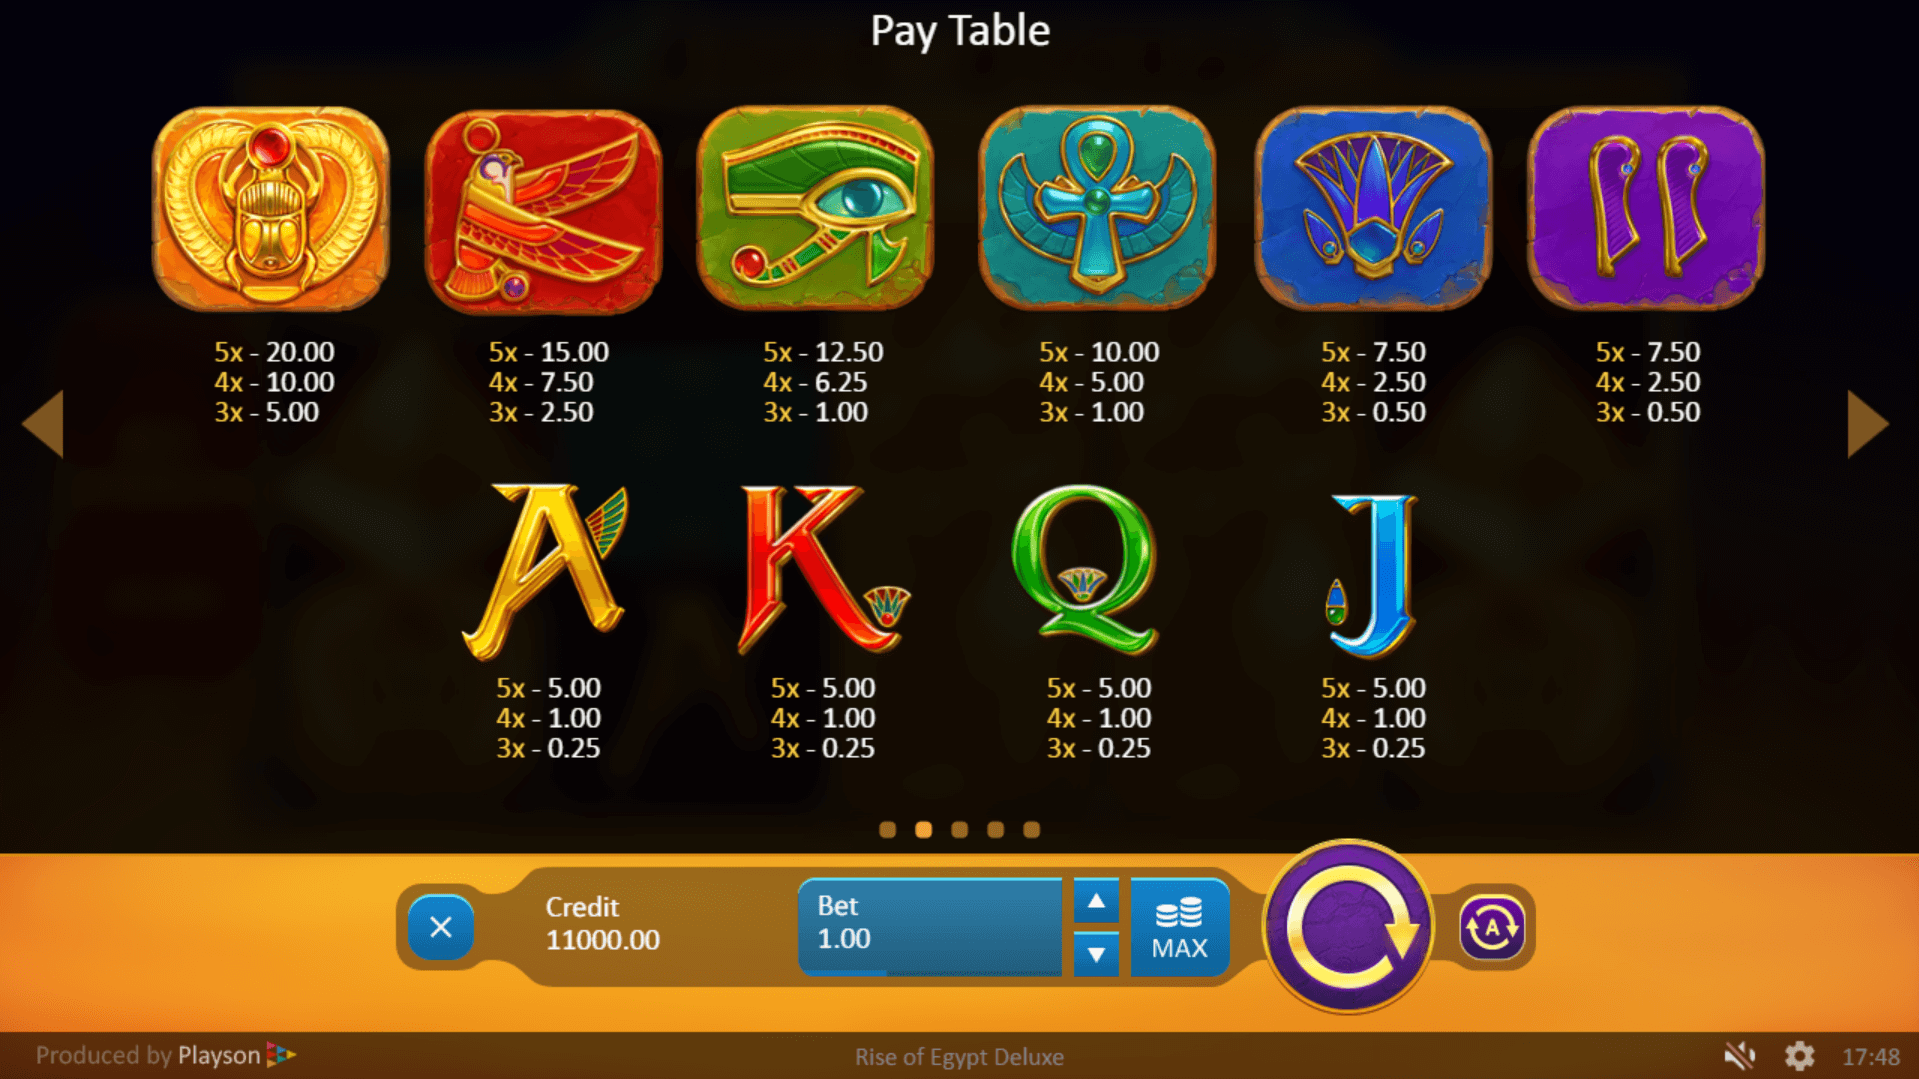 Rise of Egypt Deluxe Slot Paytable